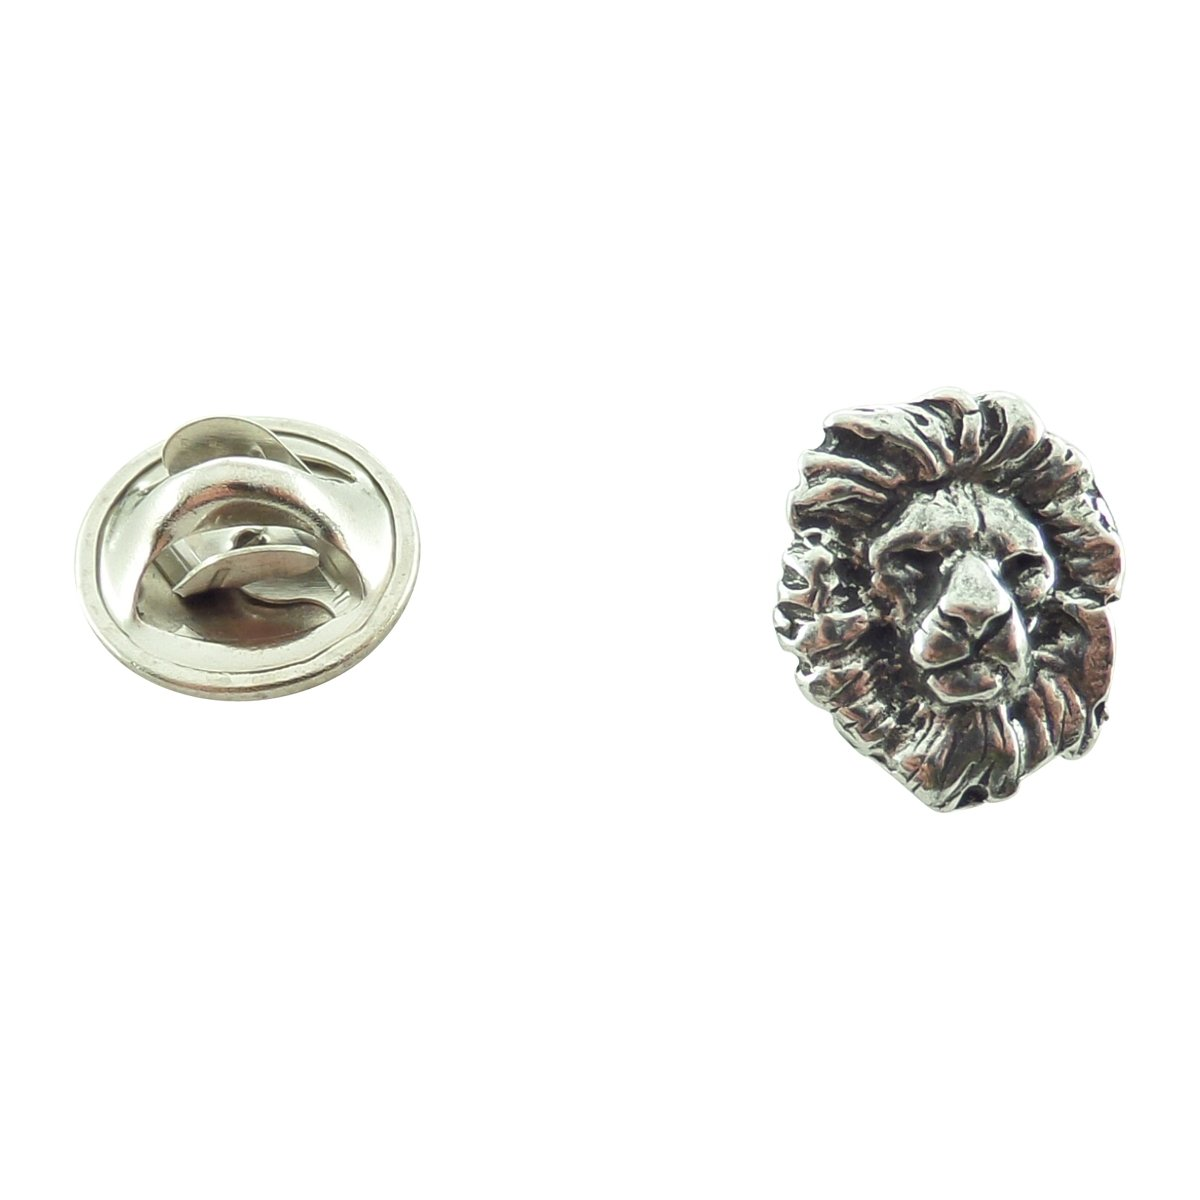 Creative Pewter Designs, Pewter Lion Head Mini Pin, Antiqued Finish, M102MP